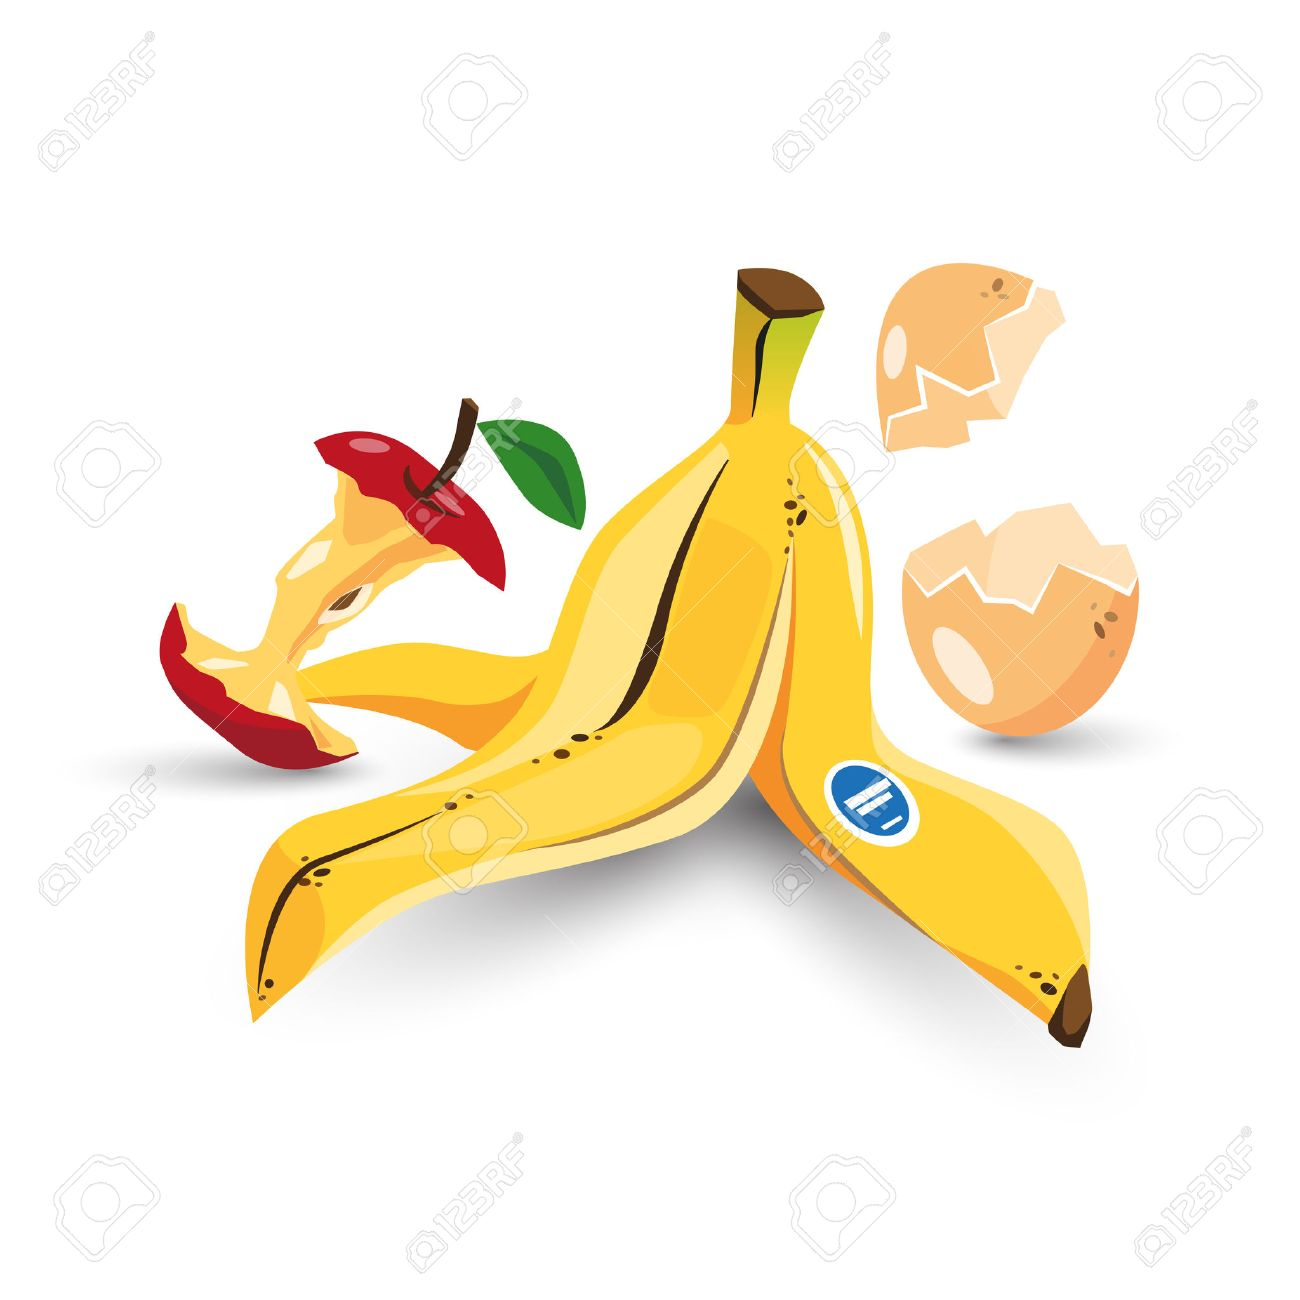 Vector illustration of isolated food trash organic rubbish with banana peel, apple core and egg shell in cartoon style. - 50529784